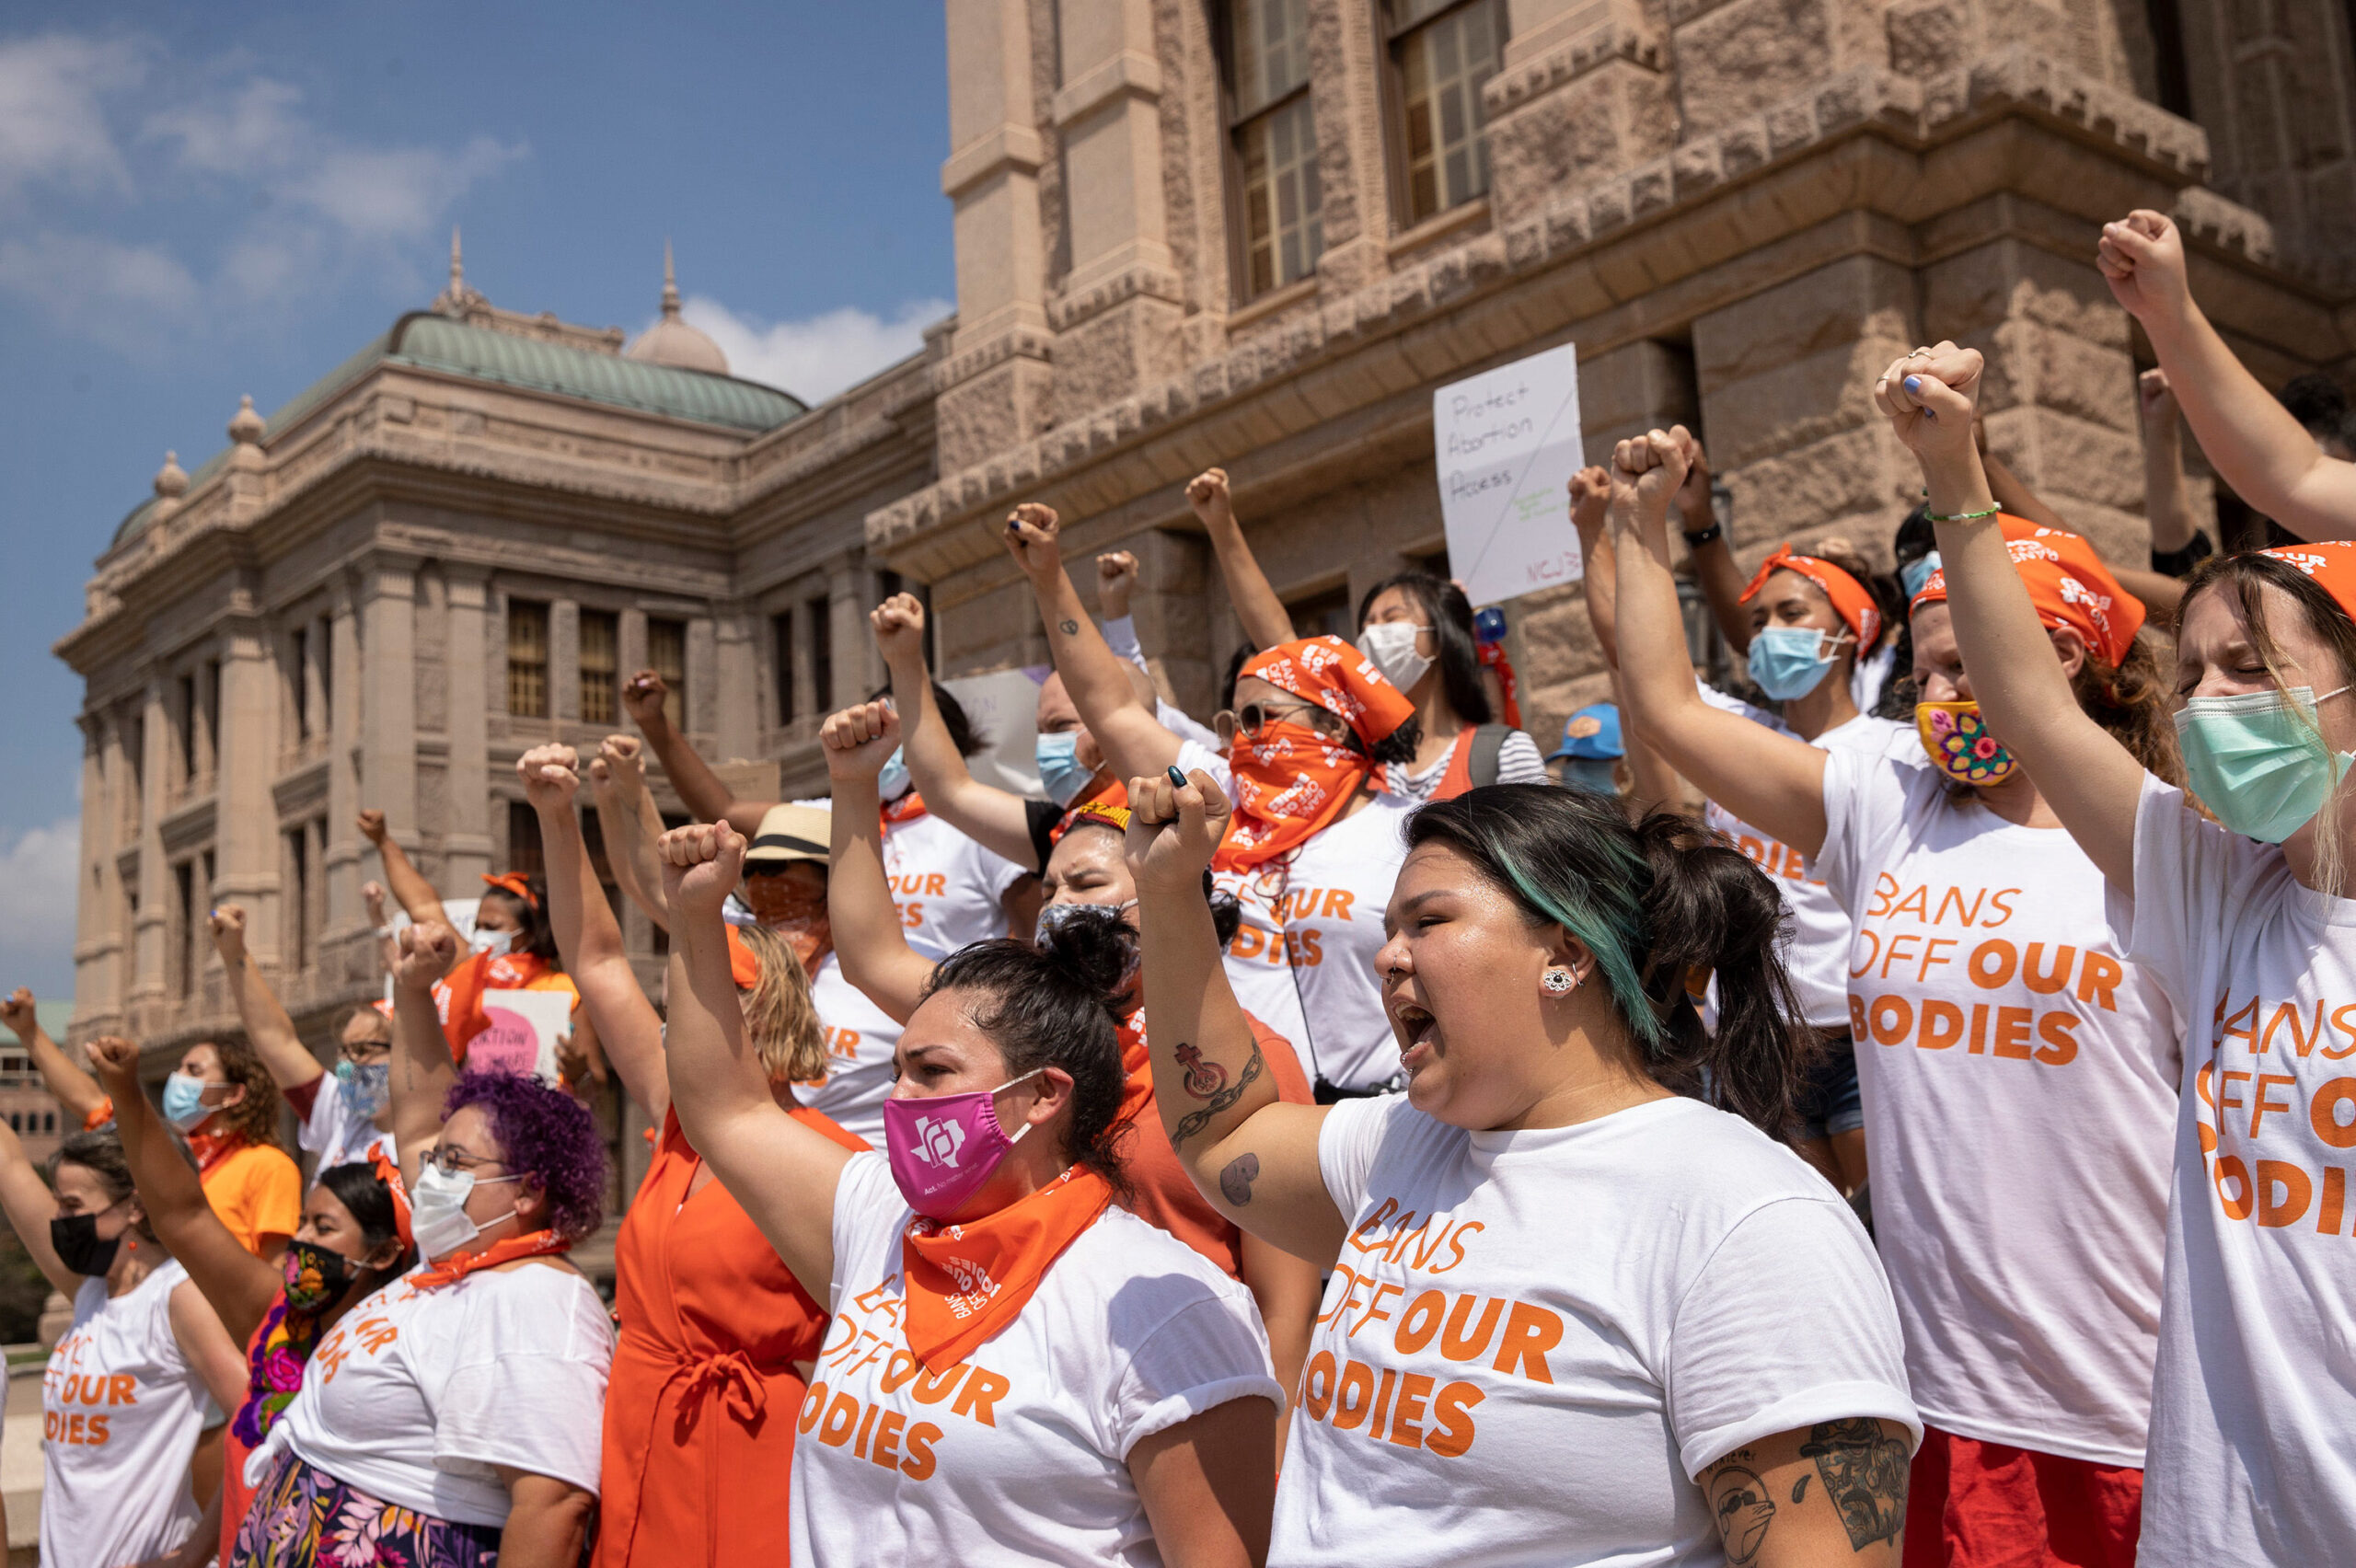 <i>Jay Janner/Austin American-Statesman/AP</i><br/>A federal judge set a hearing date for October 1 to consider a request from the Justice Department to freeze a Texas law that bars most abortions after six weeks of pregnancy